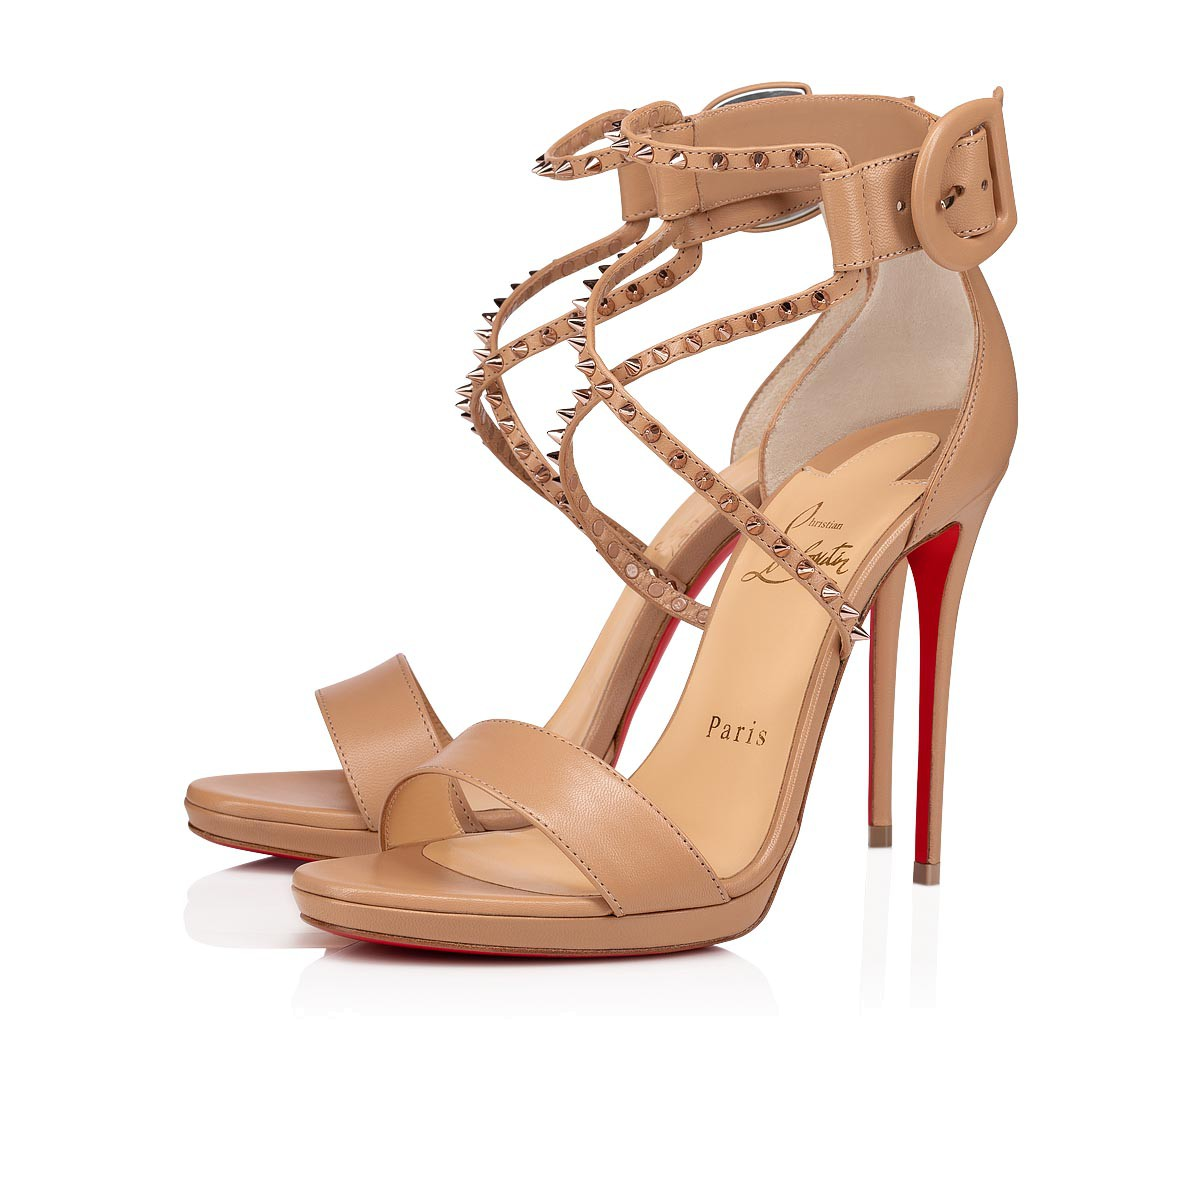 Shoes - Choca Lux - Christian Louboutin